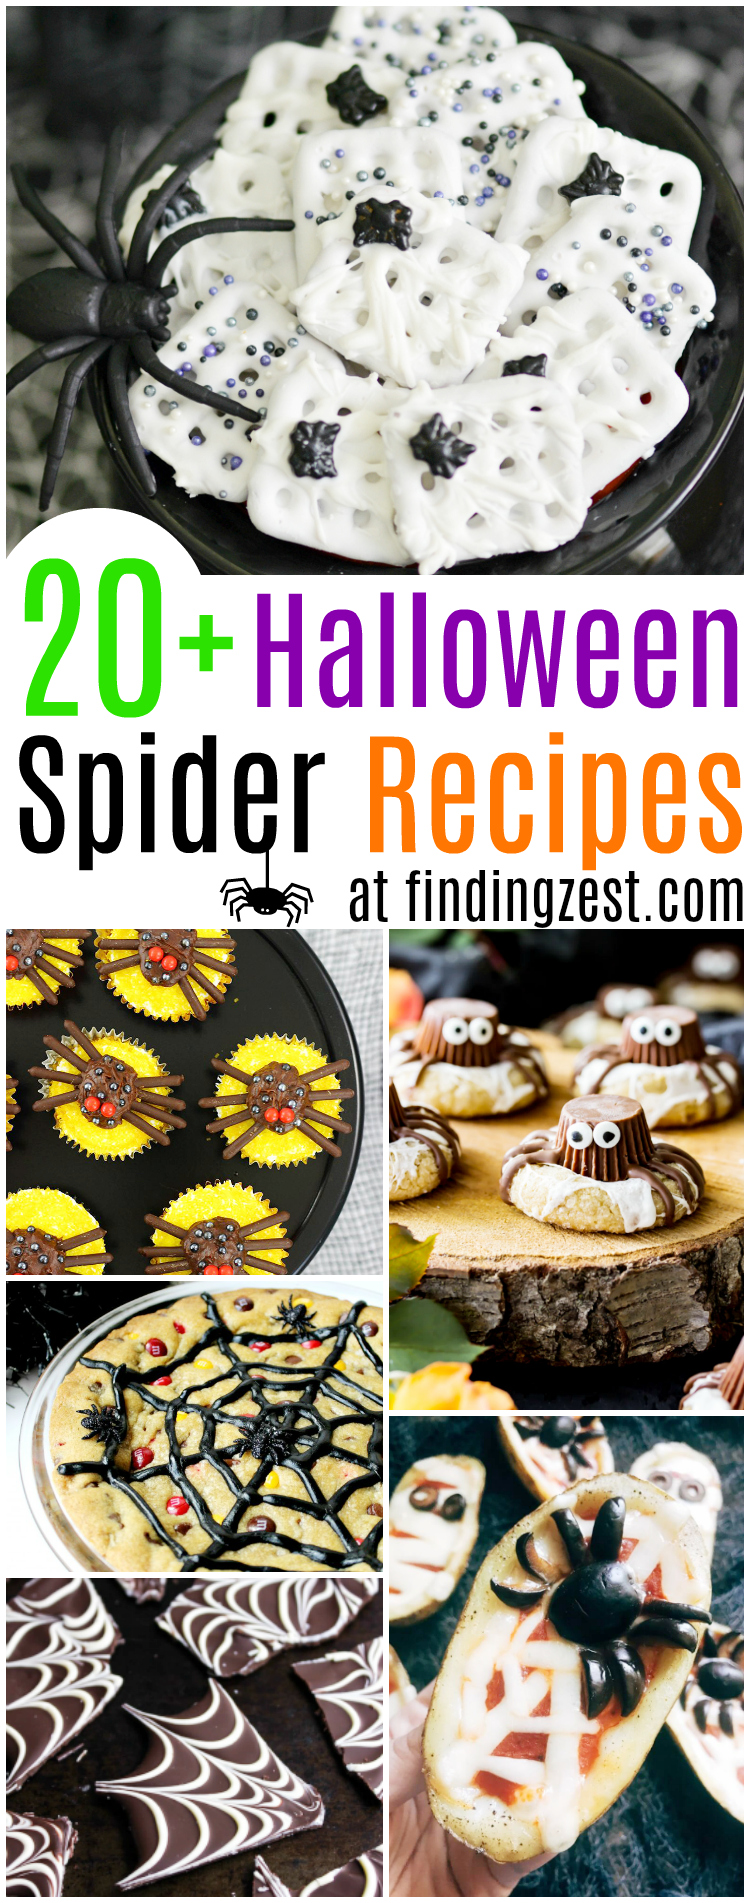 over 20 spooky halloween spider recipes you can't resist - finding zest